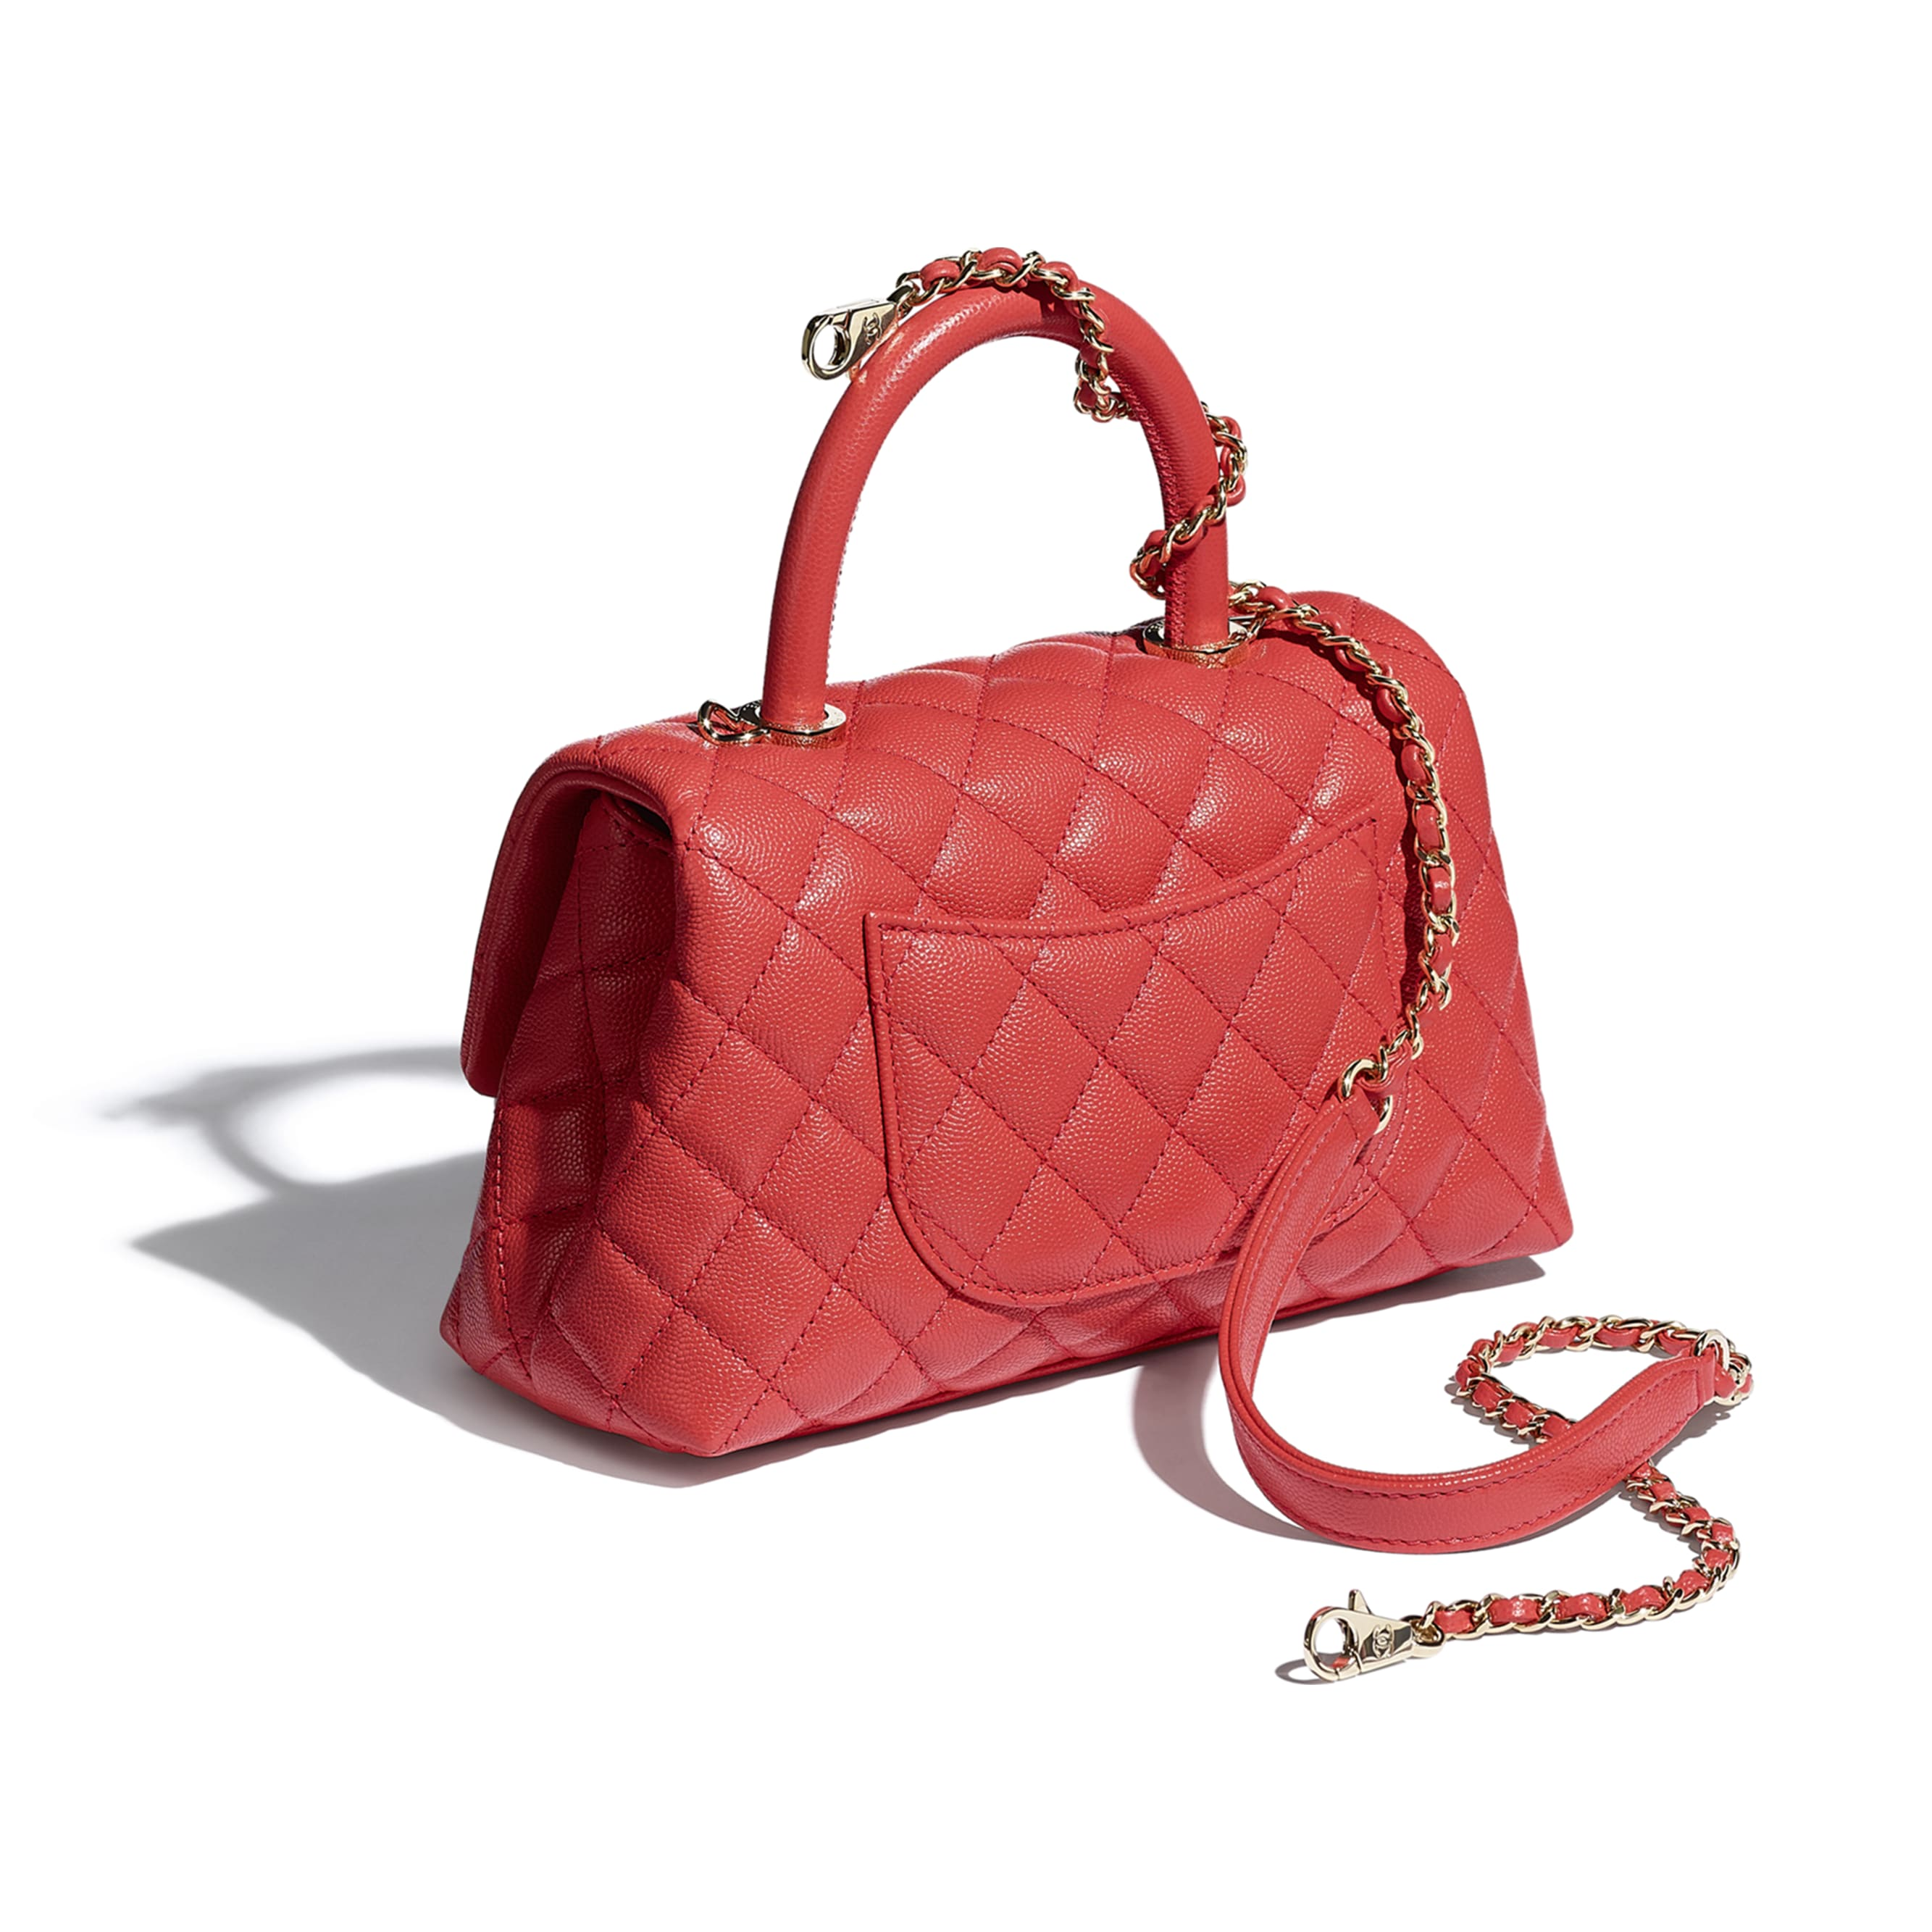 Flap Bag With Top Handle - Red - Grained Calfskin & Gold-Tone Metal - CHANEL - Other view - see standard sized version